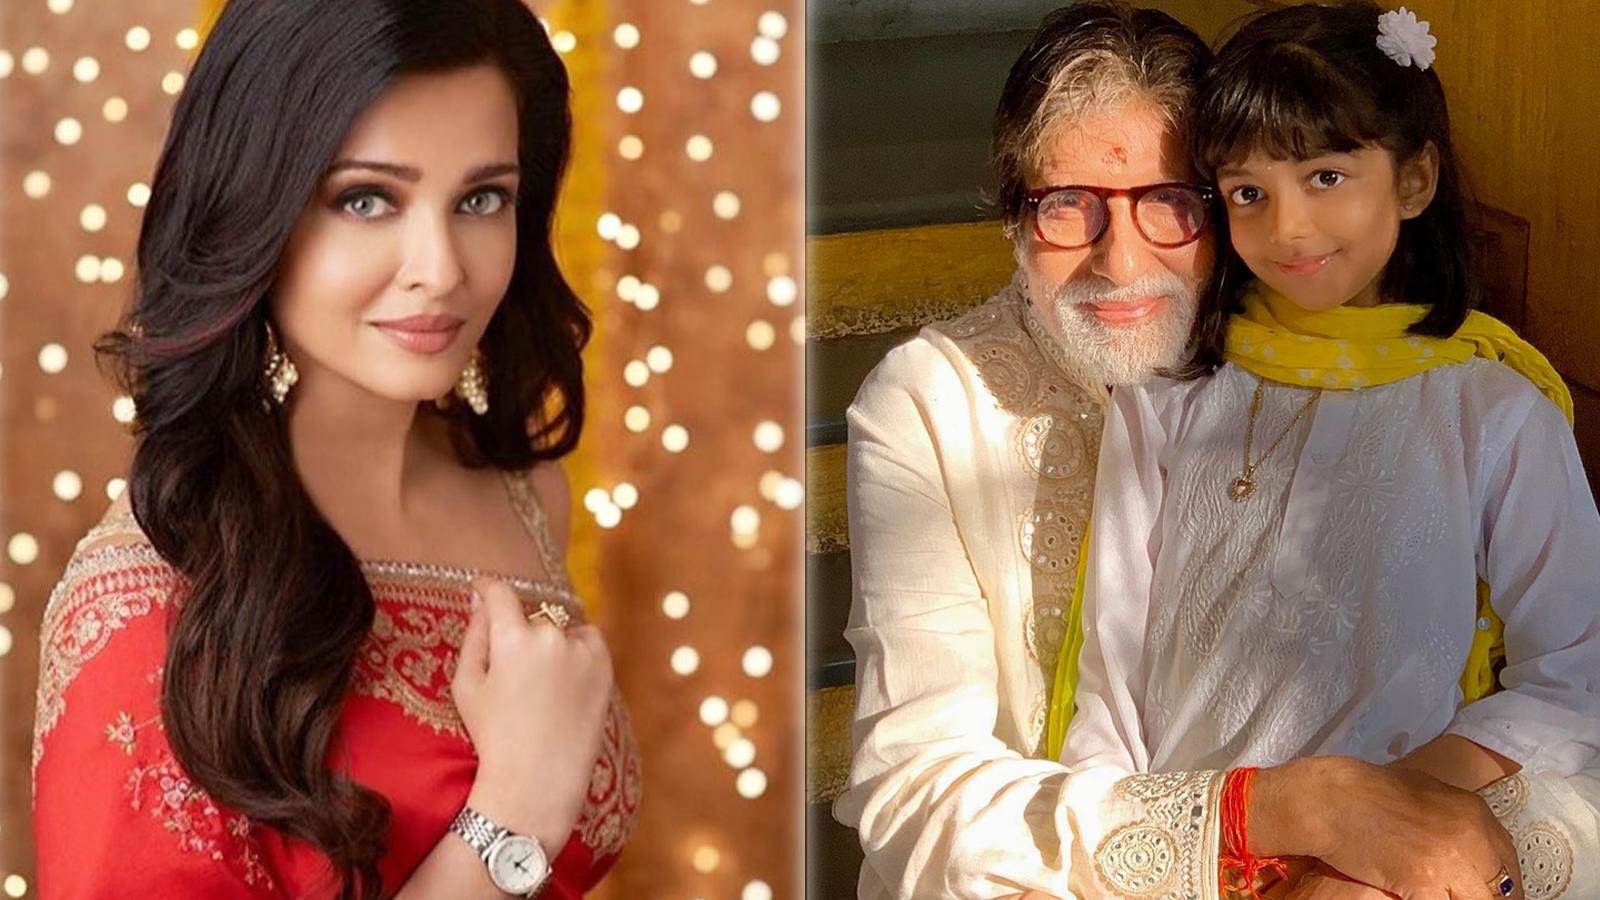 aishwarya-rai-bachchan-shares-adorable-pic-of-father-in-law-amitabh-bachchan-with-her-little-daughter-aaradhya